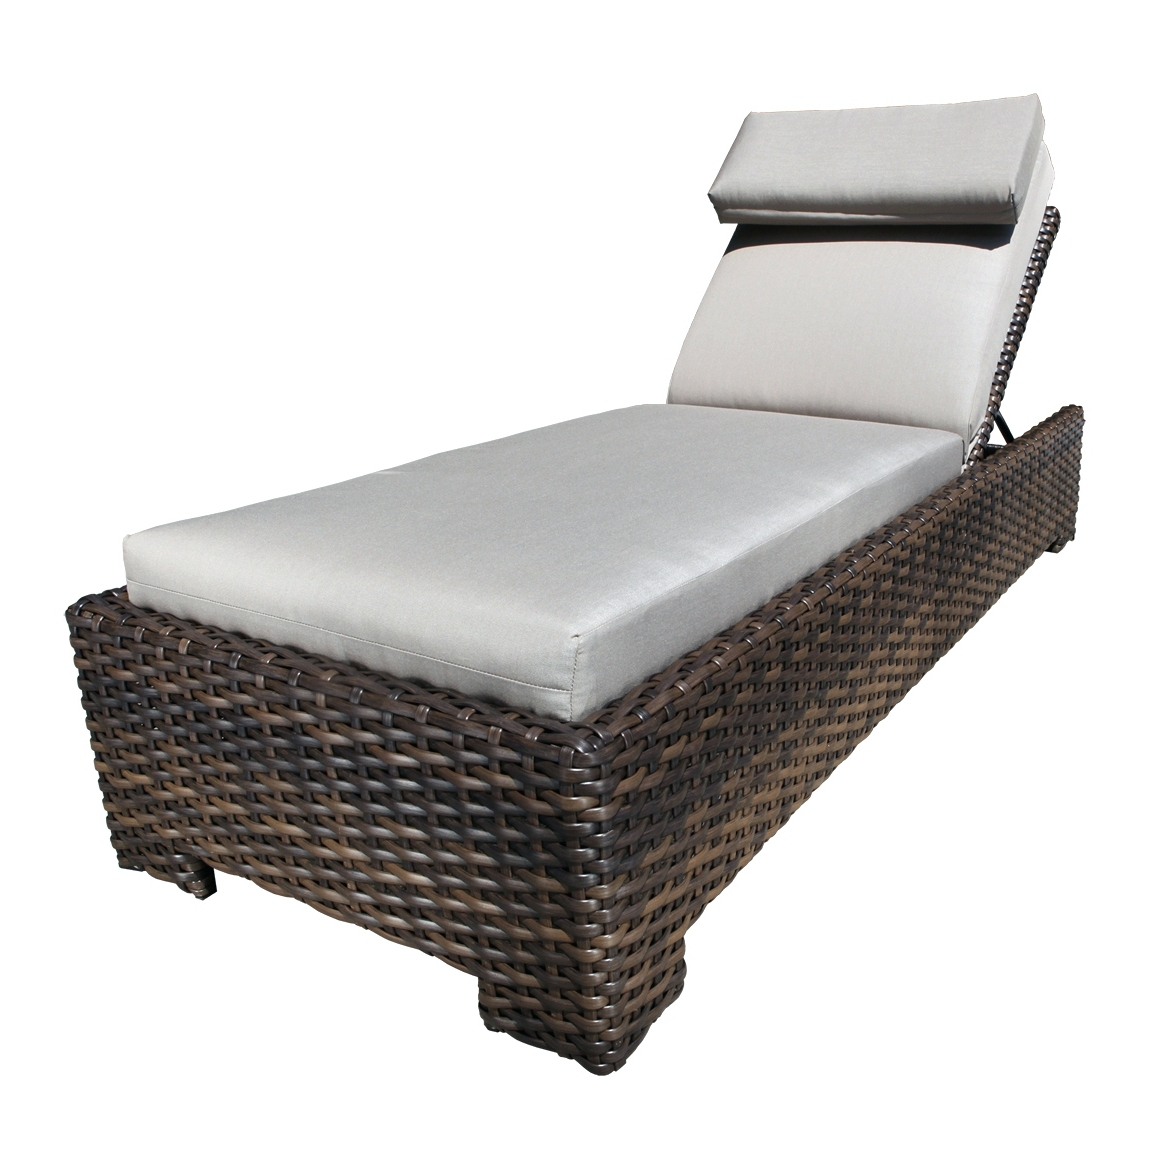 Boca Chaise Lounge Outdoor Chairs With Pillows Pertaining To Most Current Boca Chaise Lounge Chair Outdoor Pillow • Lounge Chairs Ideas (View 6 of 15)